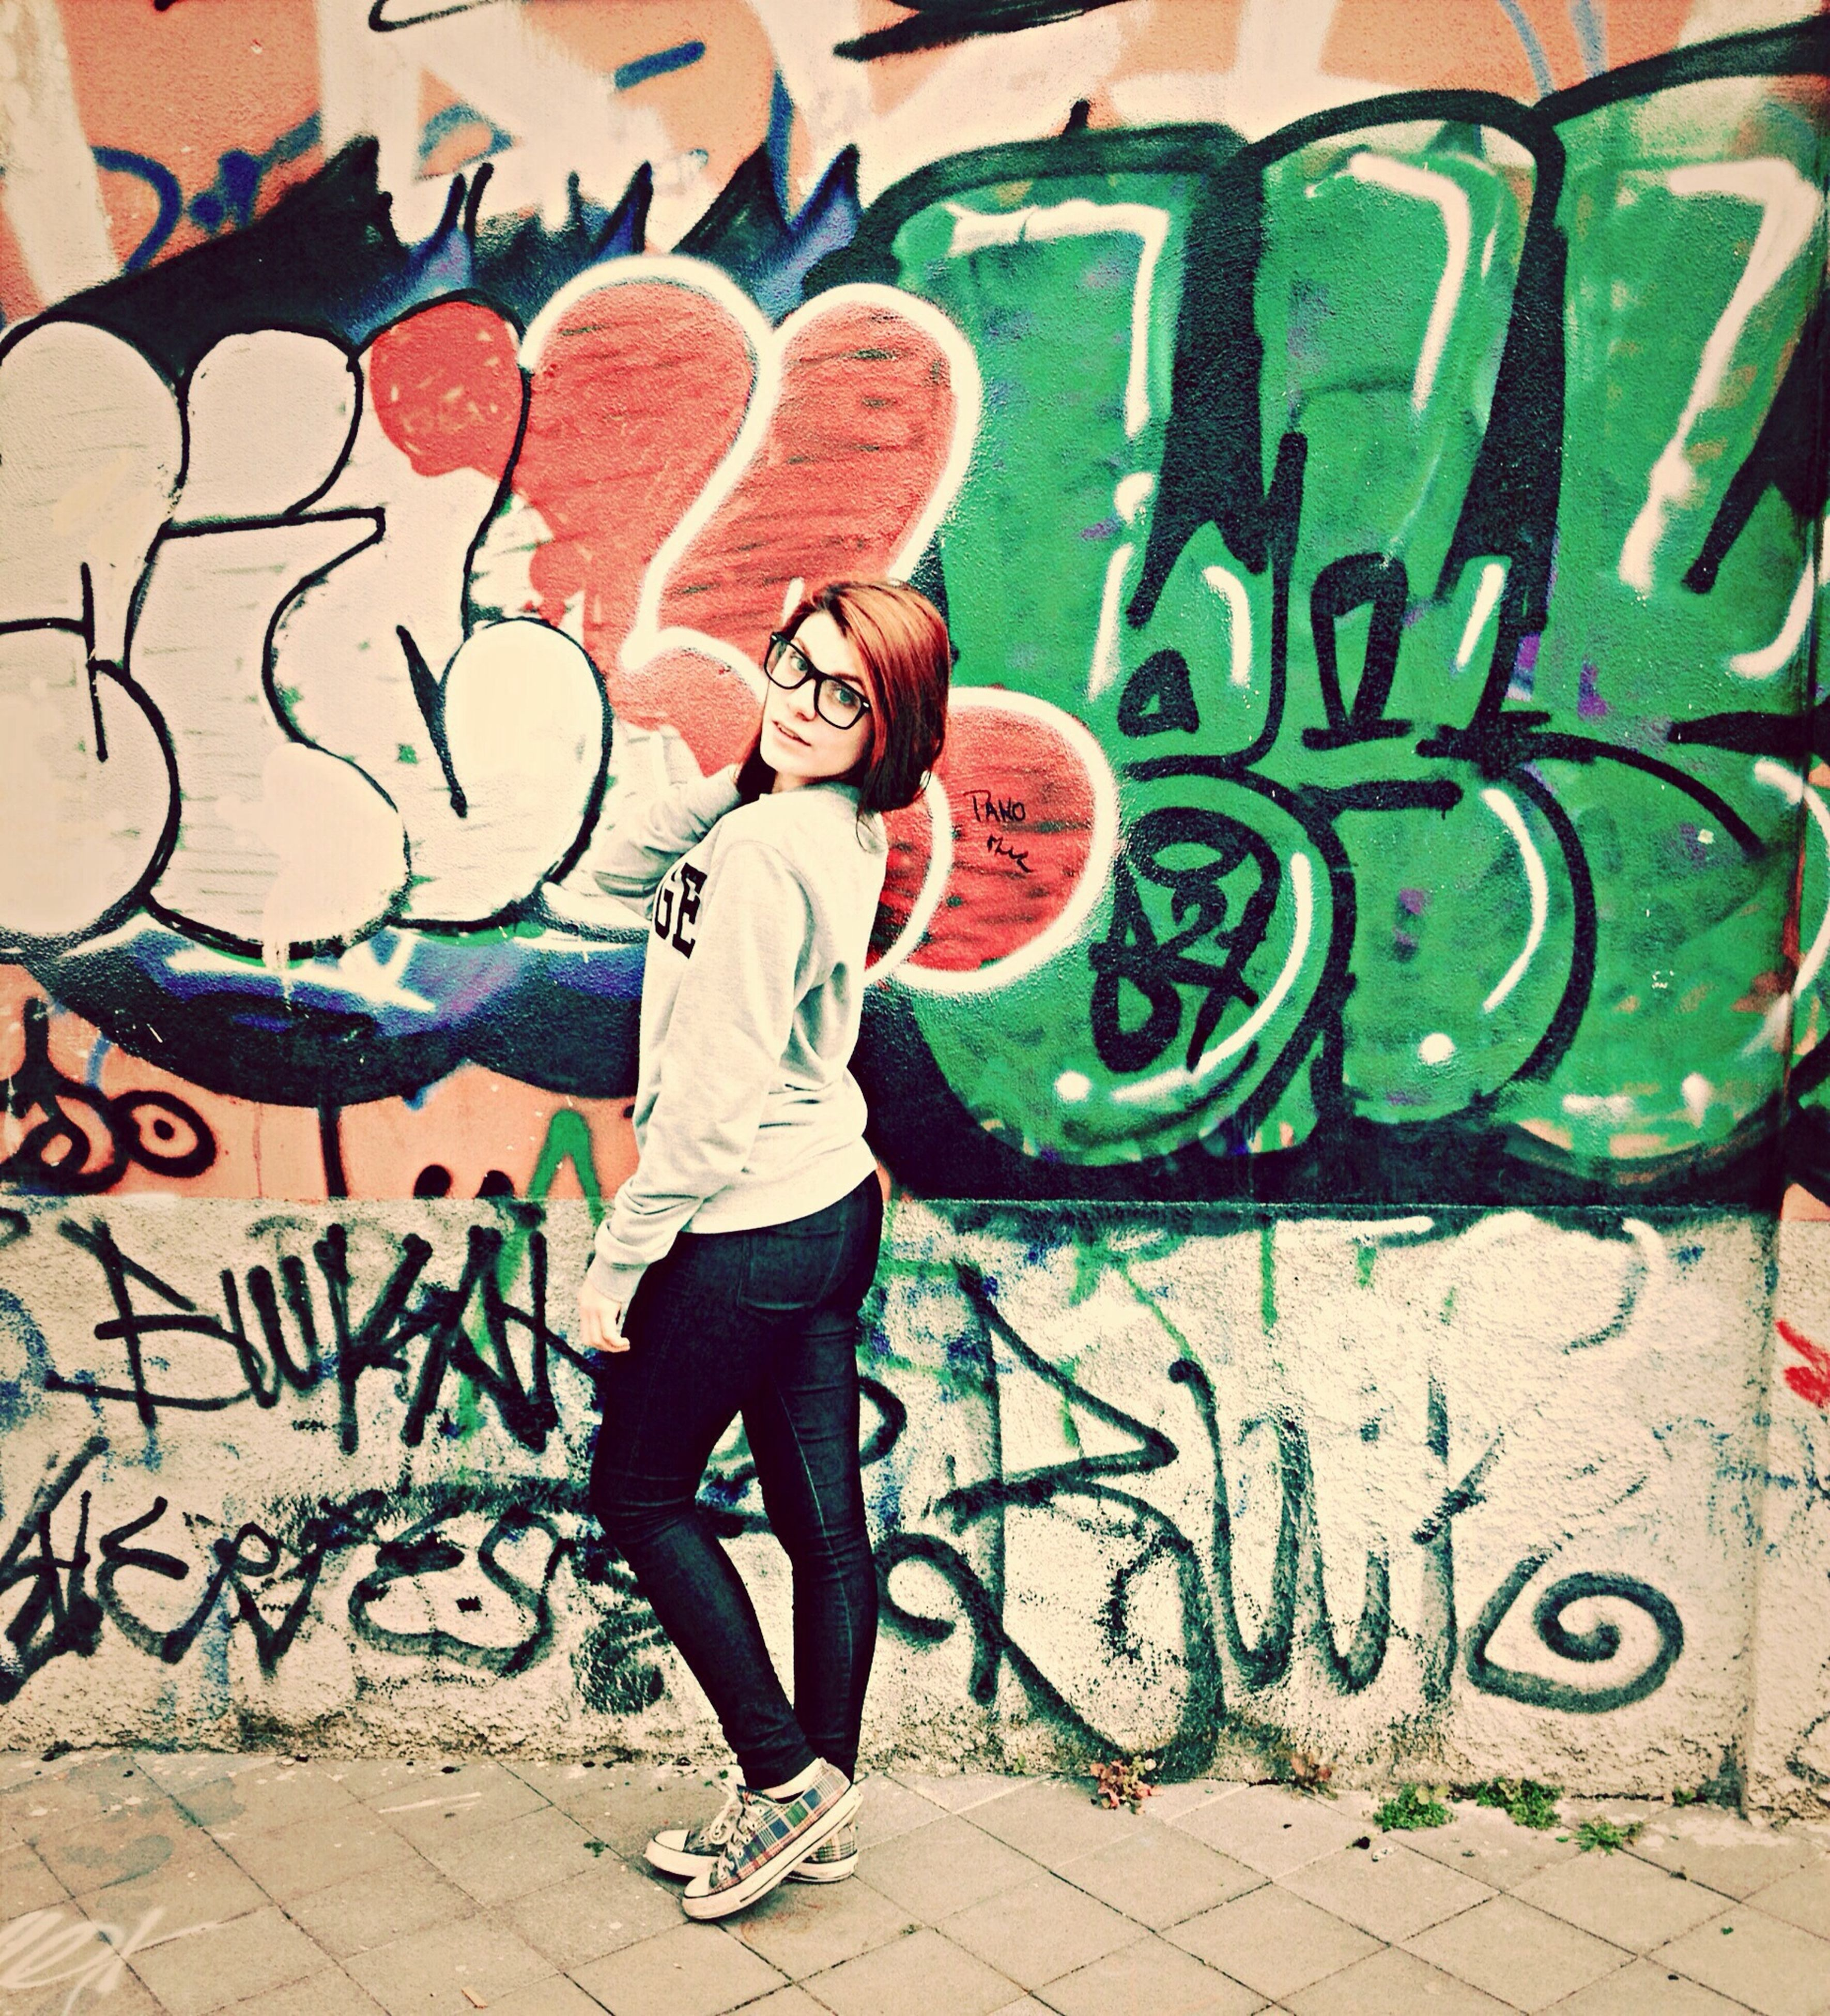 graffiti, wall - building feature, art, creativity, art and craft, lifestyles, full length, multi colored, street art, built structure, casual clothing, leisure activity, wall, architecture, text, bicycle, men, outdoors